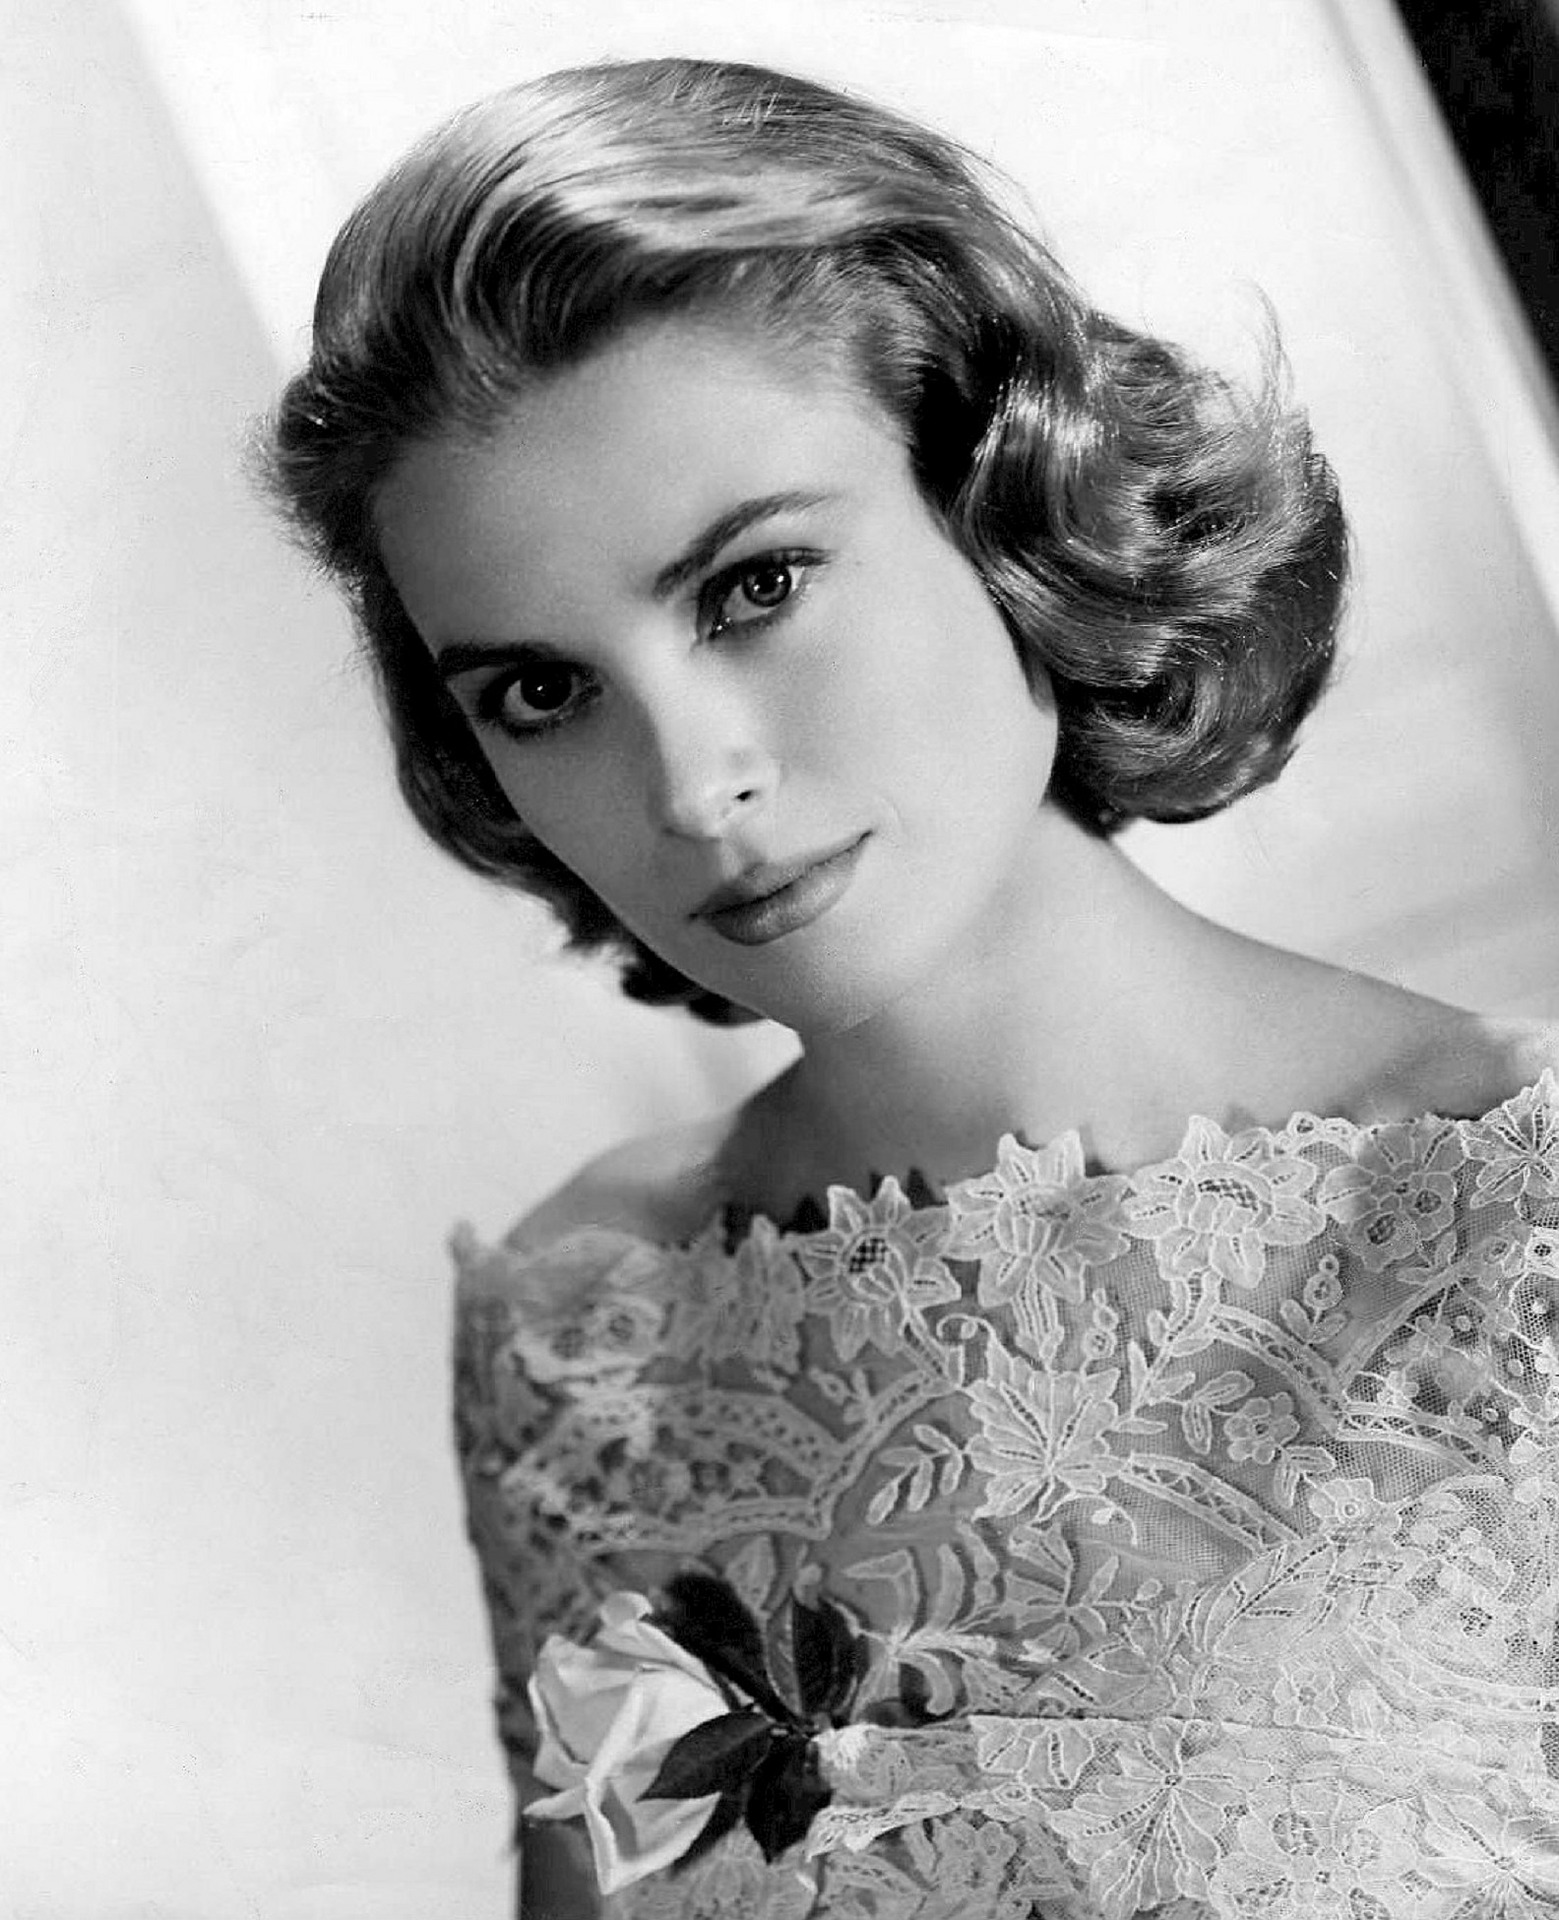 grace-kelly-394485_1920